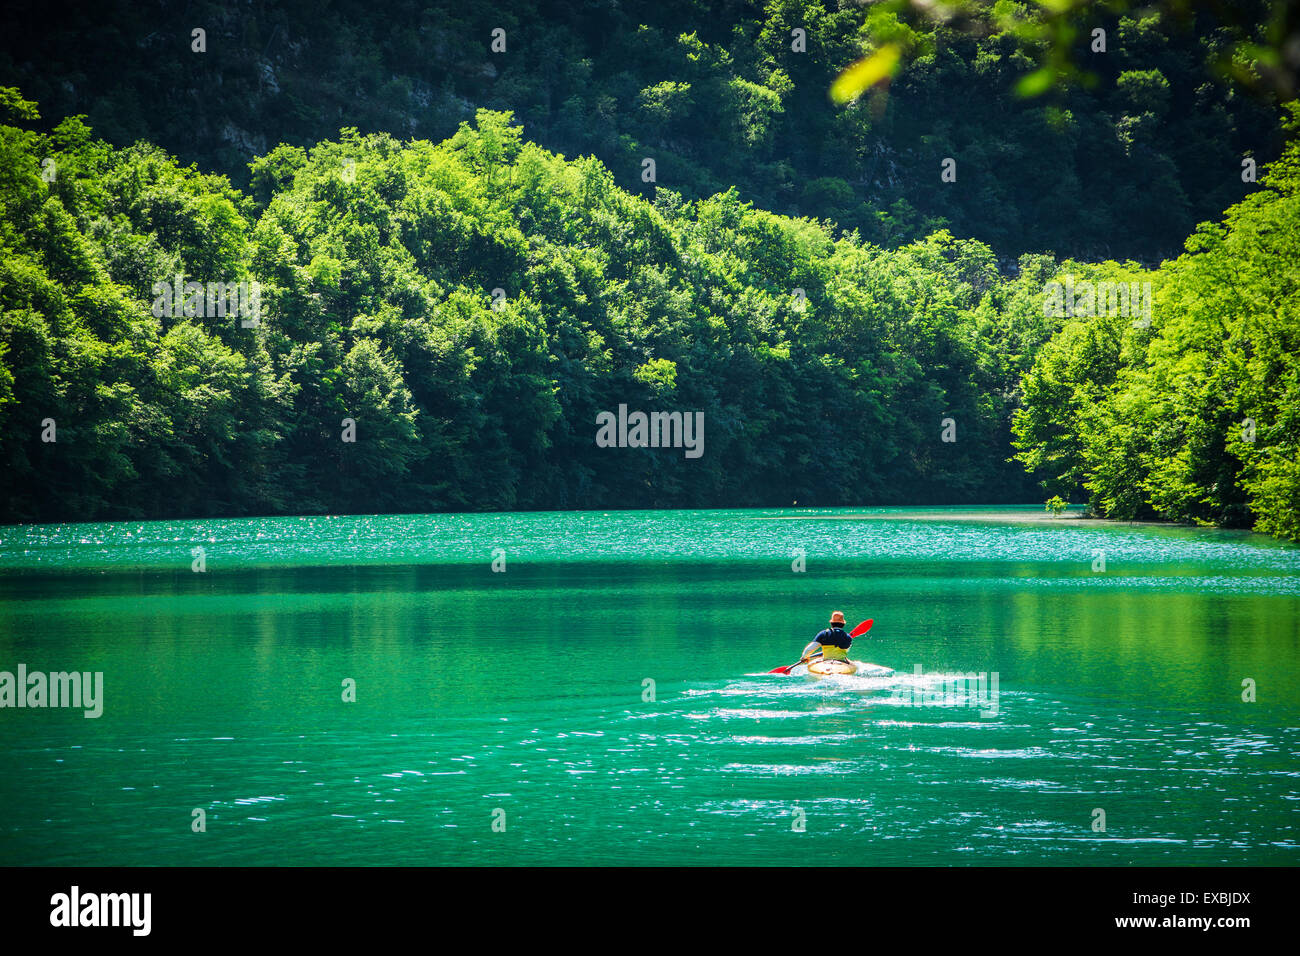 Lonely Adventurer Kayaking at the Beautiful Lake with Tranquil Panorama View. - Stock Image